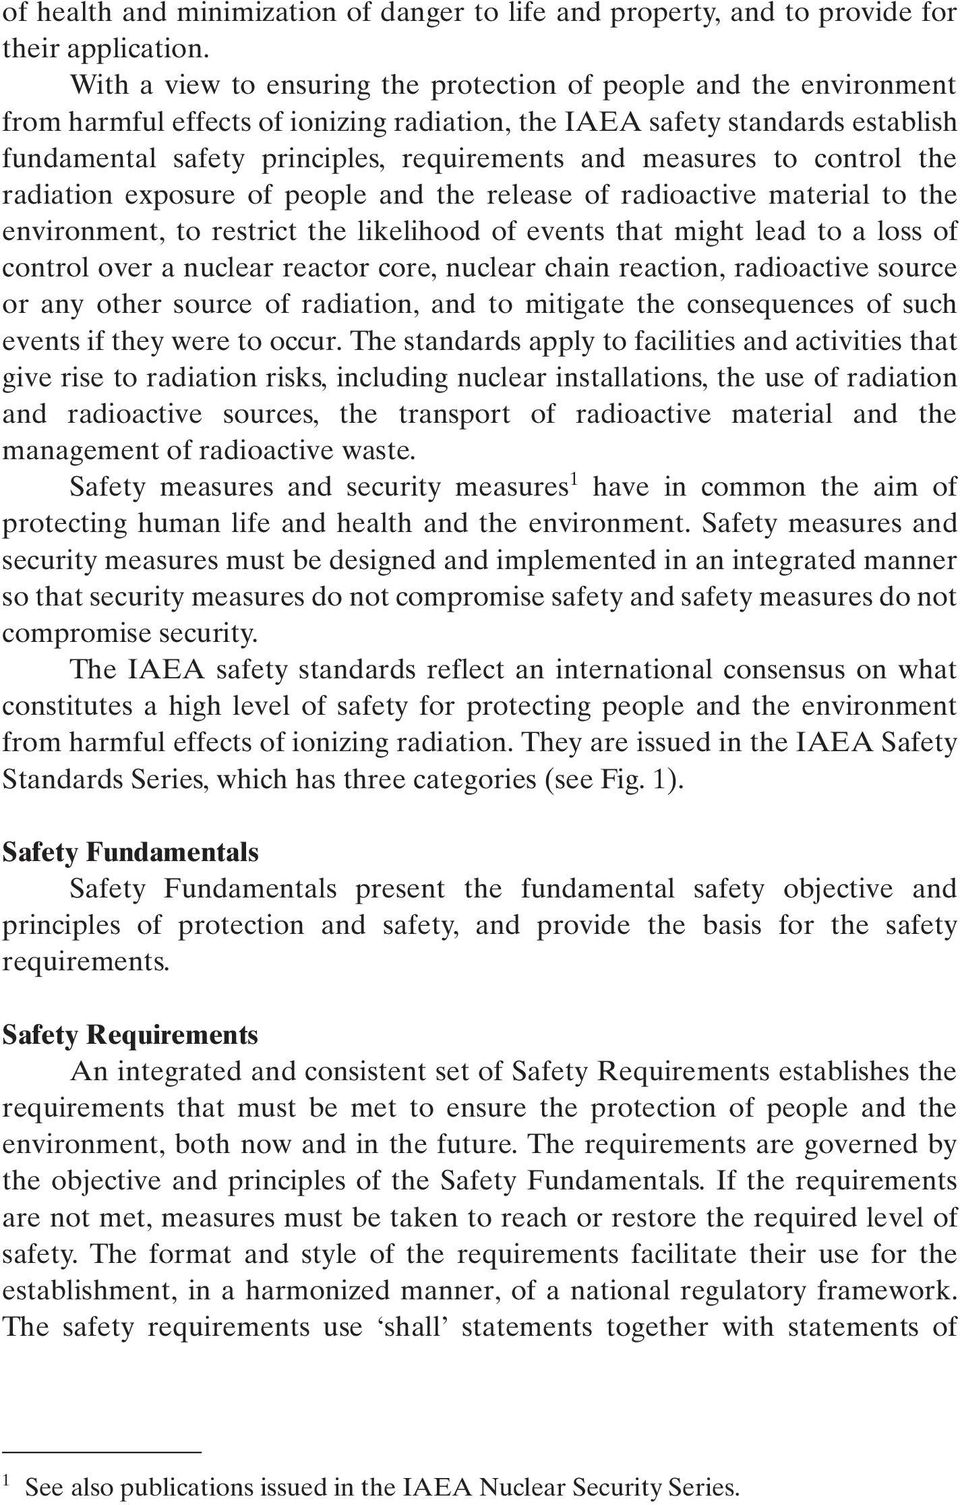 measures to control the radiation exposure of people and the release of radioactive material to the environment, to restrict the likelihood of events that might lead to a loss of control over a